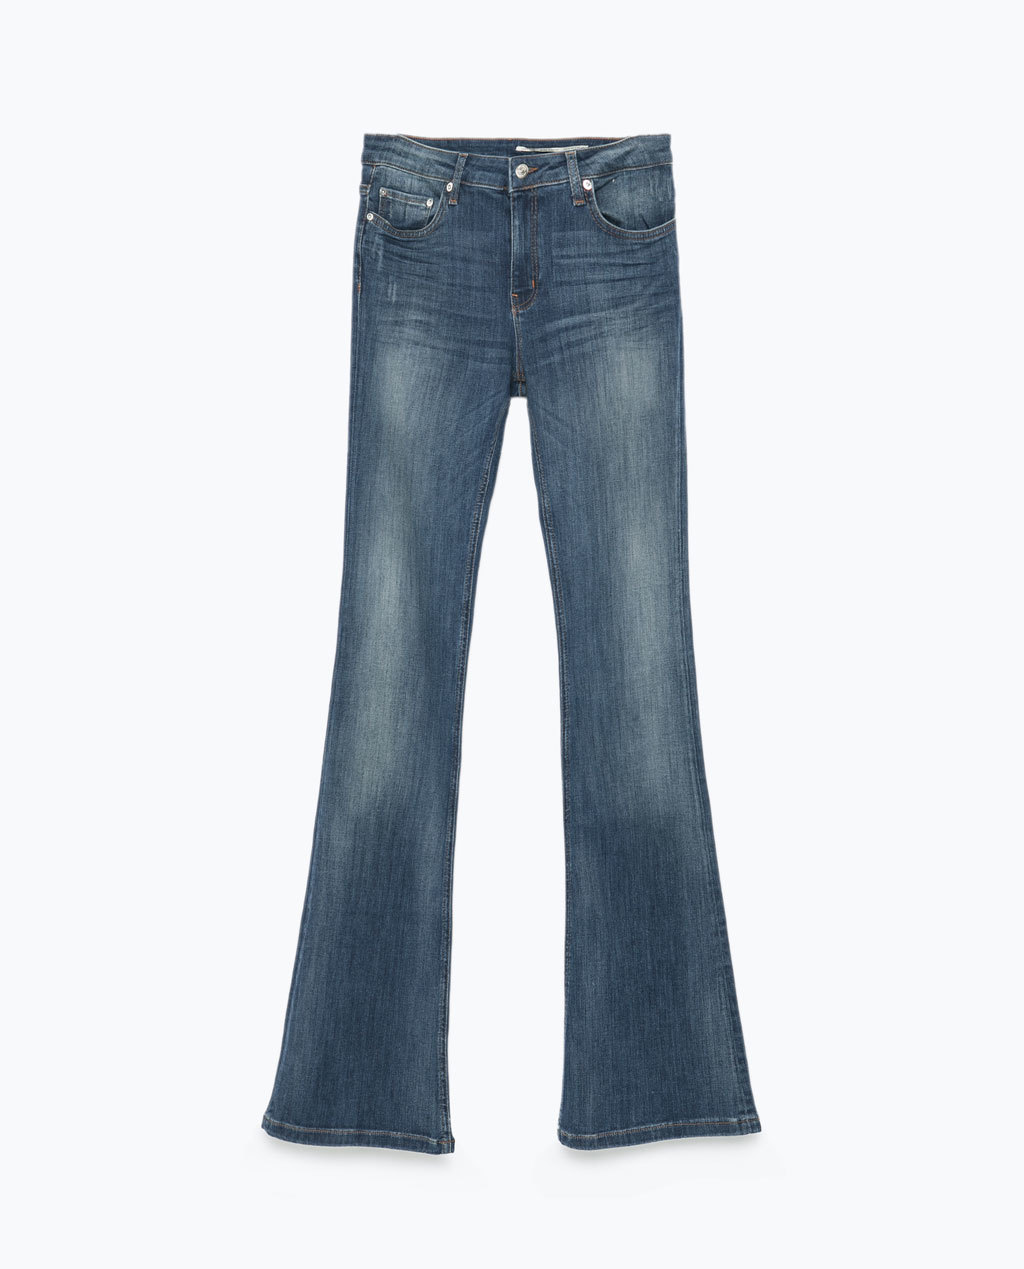 Flared Jeans - style: flares; length: standard; pattern: plain; pocket detail: traditional 5 pocket; waist: mid/regular rise; predominant colour: navy; occasions: casual; fibres: cotton - stretch; jeans detail: shading down centre of thigh, washed/faded; texture group: denim; pattern type: fabric; trends: seventies retro; season: s/s 2015